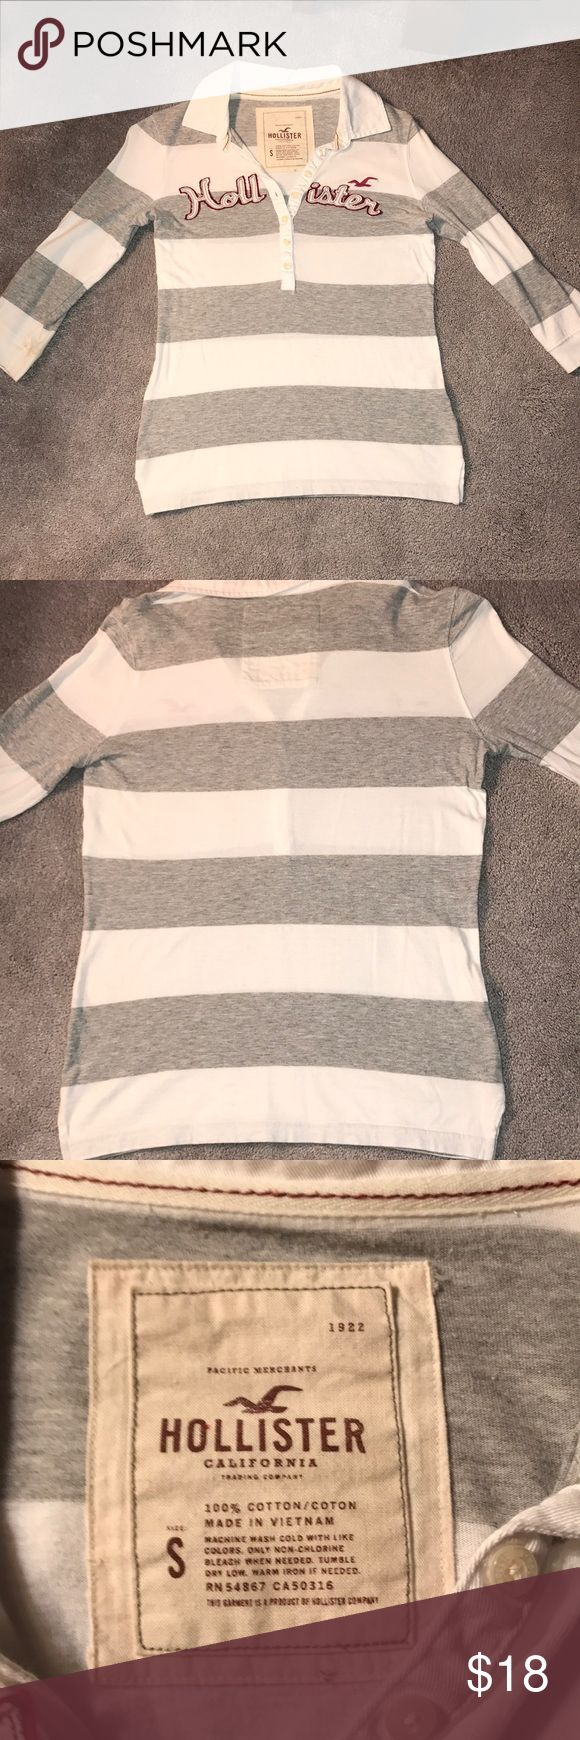 HOLLISTER RUGBY SHIRT GREY AND WHITE STRIPED This is a gray and white striped Hollister rugby shirt. It has not been worn very many times. There are no stains on it and it is a very nice shirt. It is a women's small. It is 100% cotton. Hollister Tops Tees - Long Sleeve